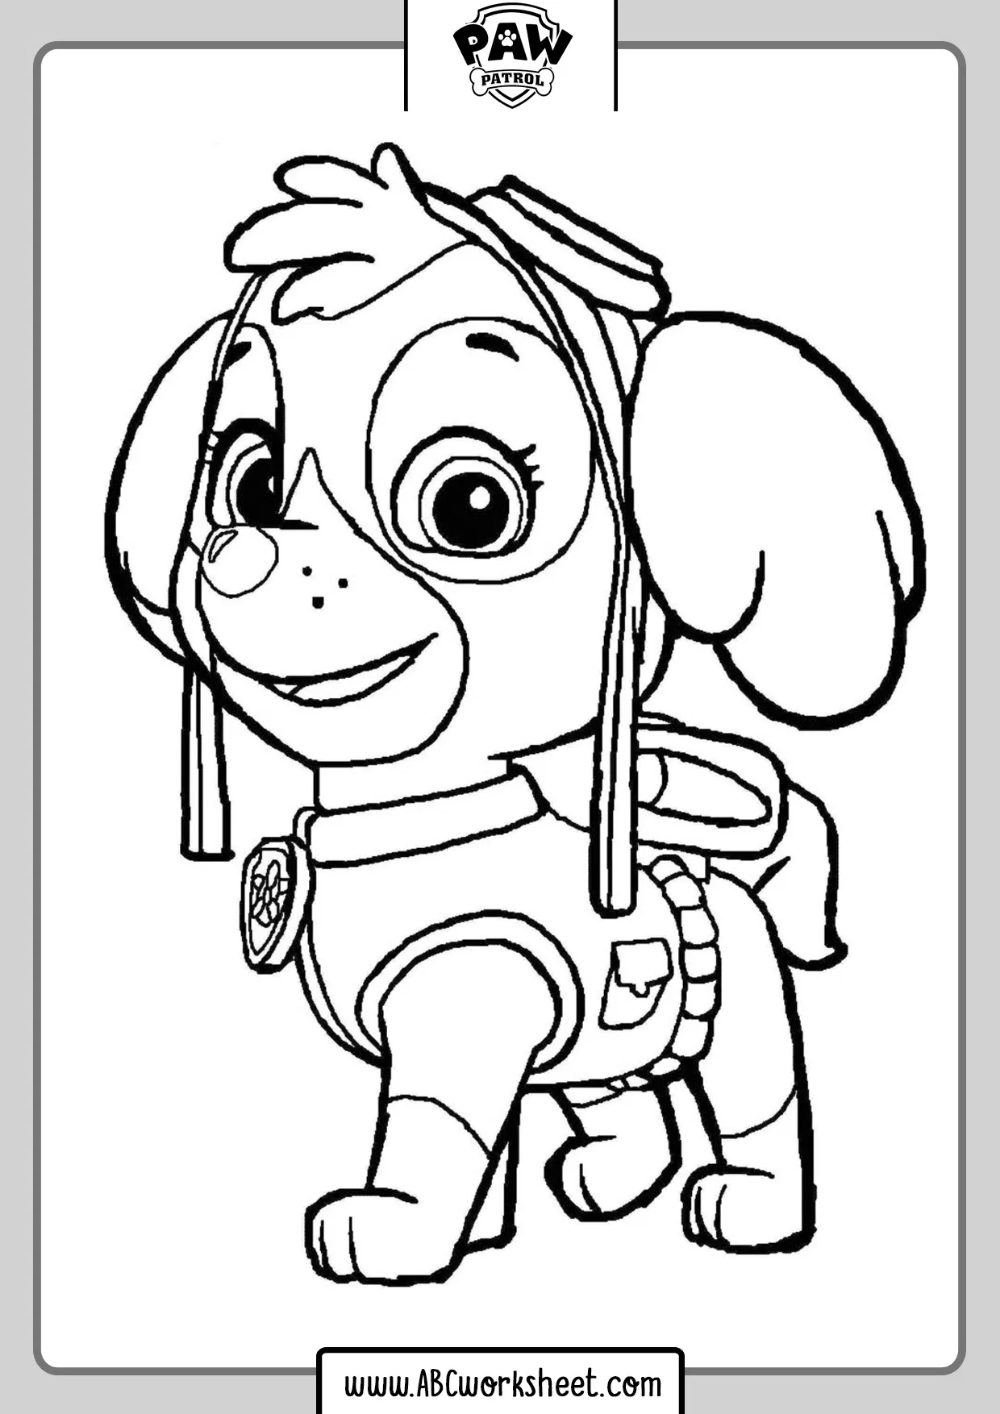 Coloring Pages Paw Patrol Paw Patrol Coloring Pages Paw Patrol Coloring Skye Paw Patrol